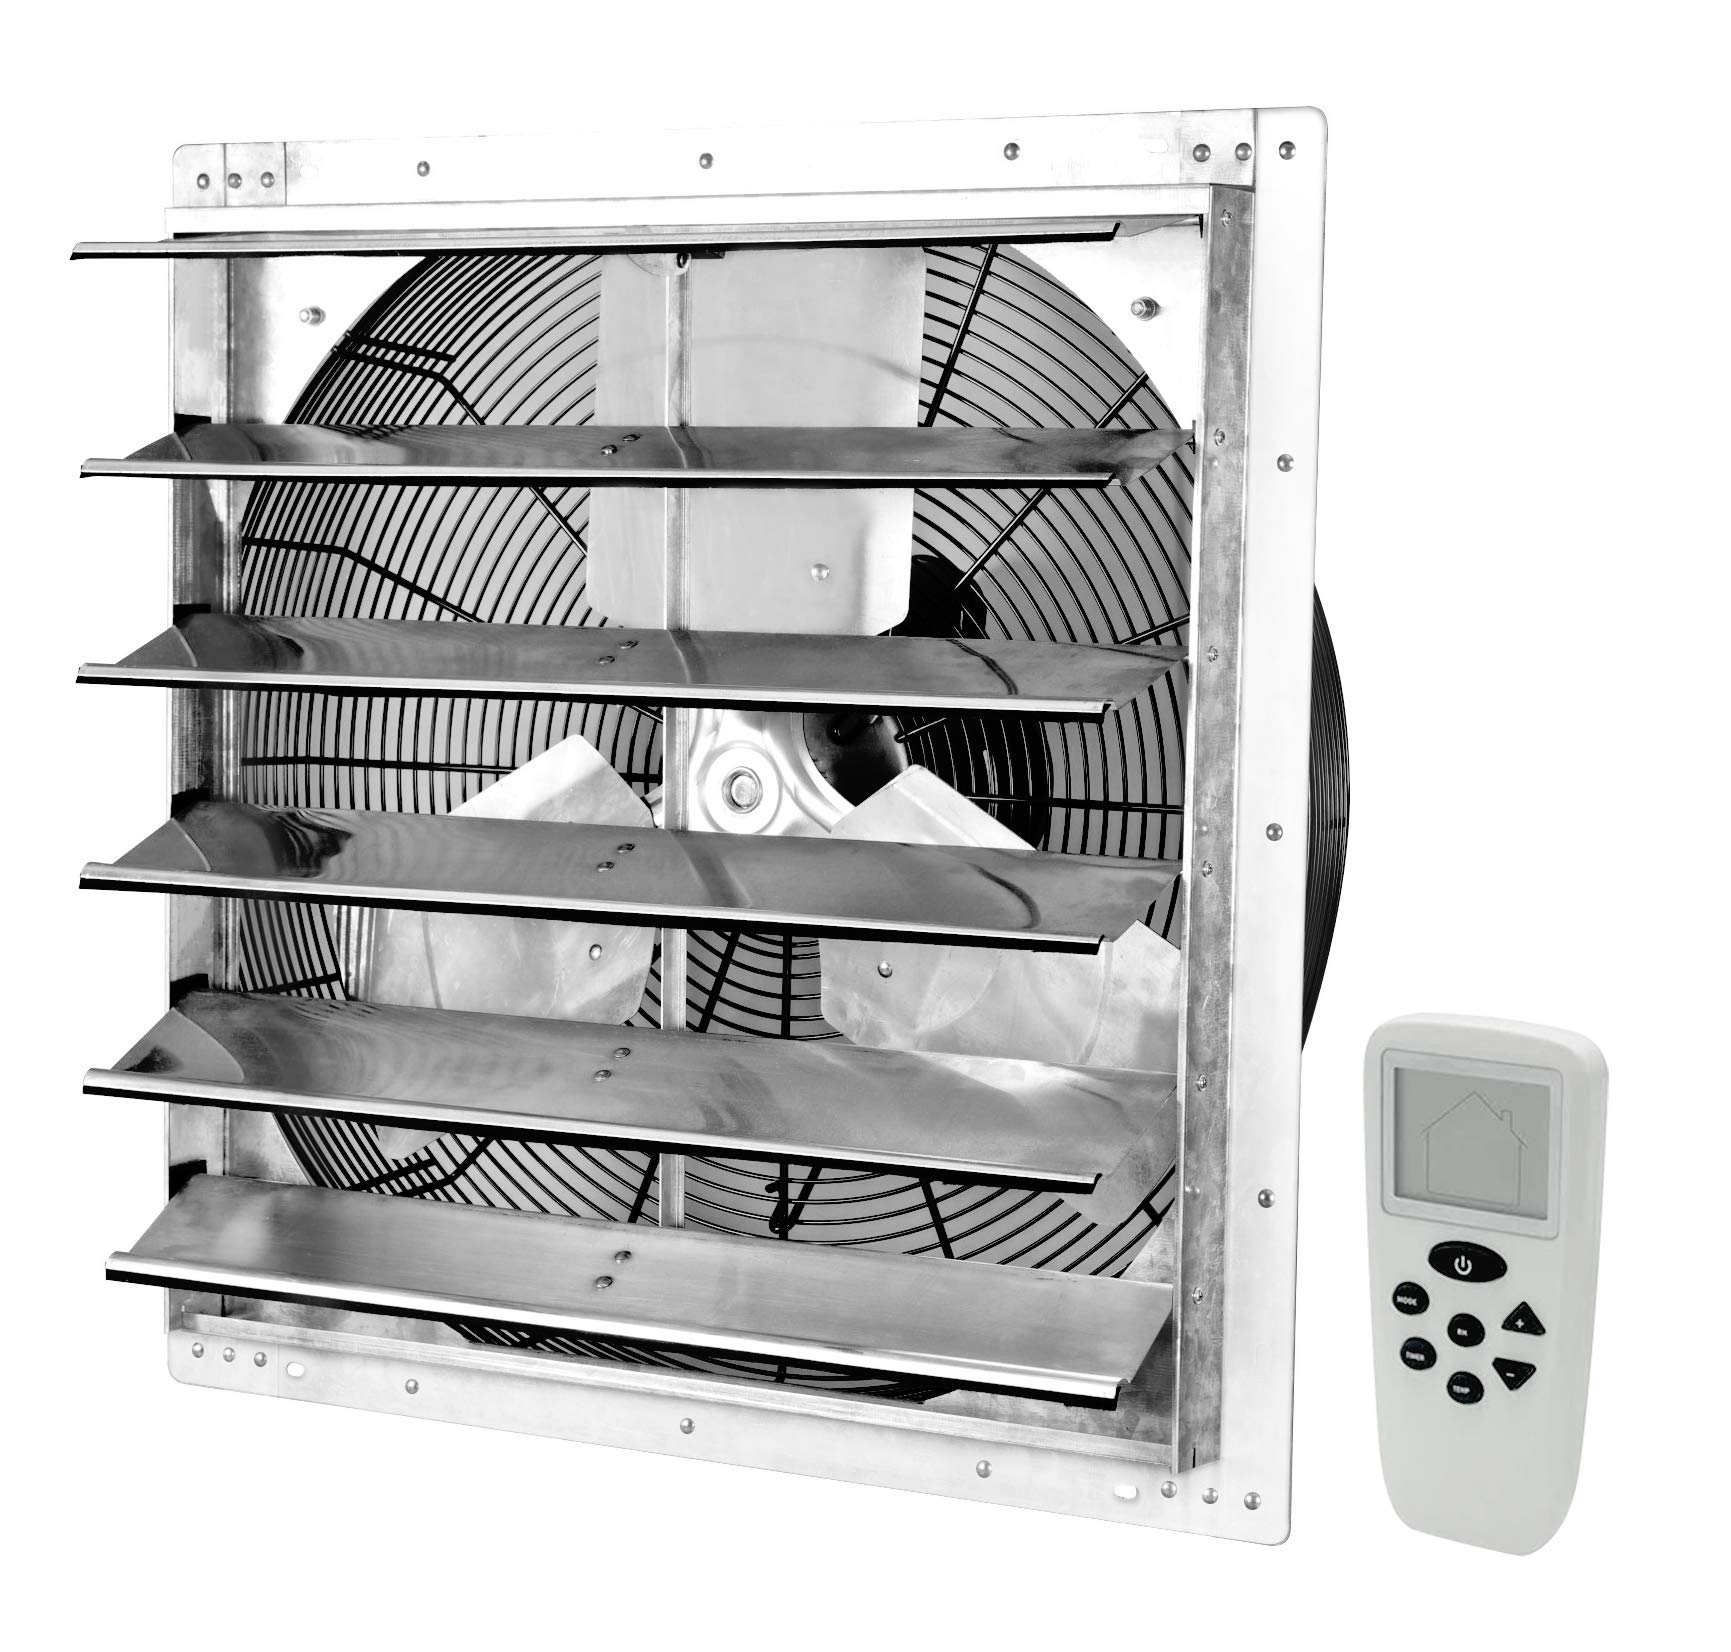 Iliving ILG8SF20VC Shutter Mount Exhaust Fan, 20'' - Variable, Silver (Renewed) by Iliving